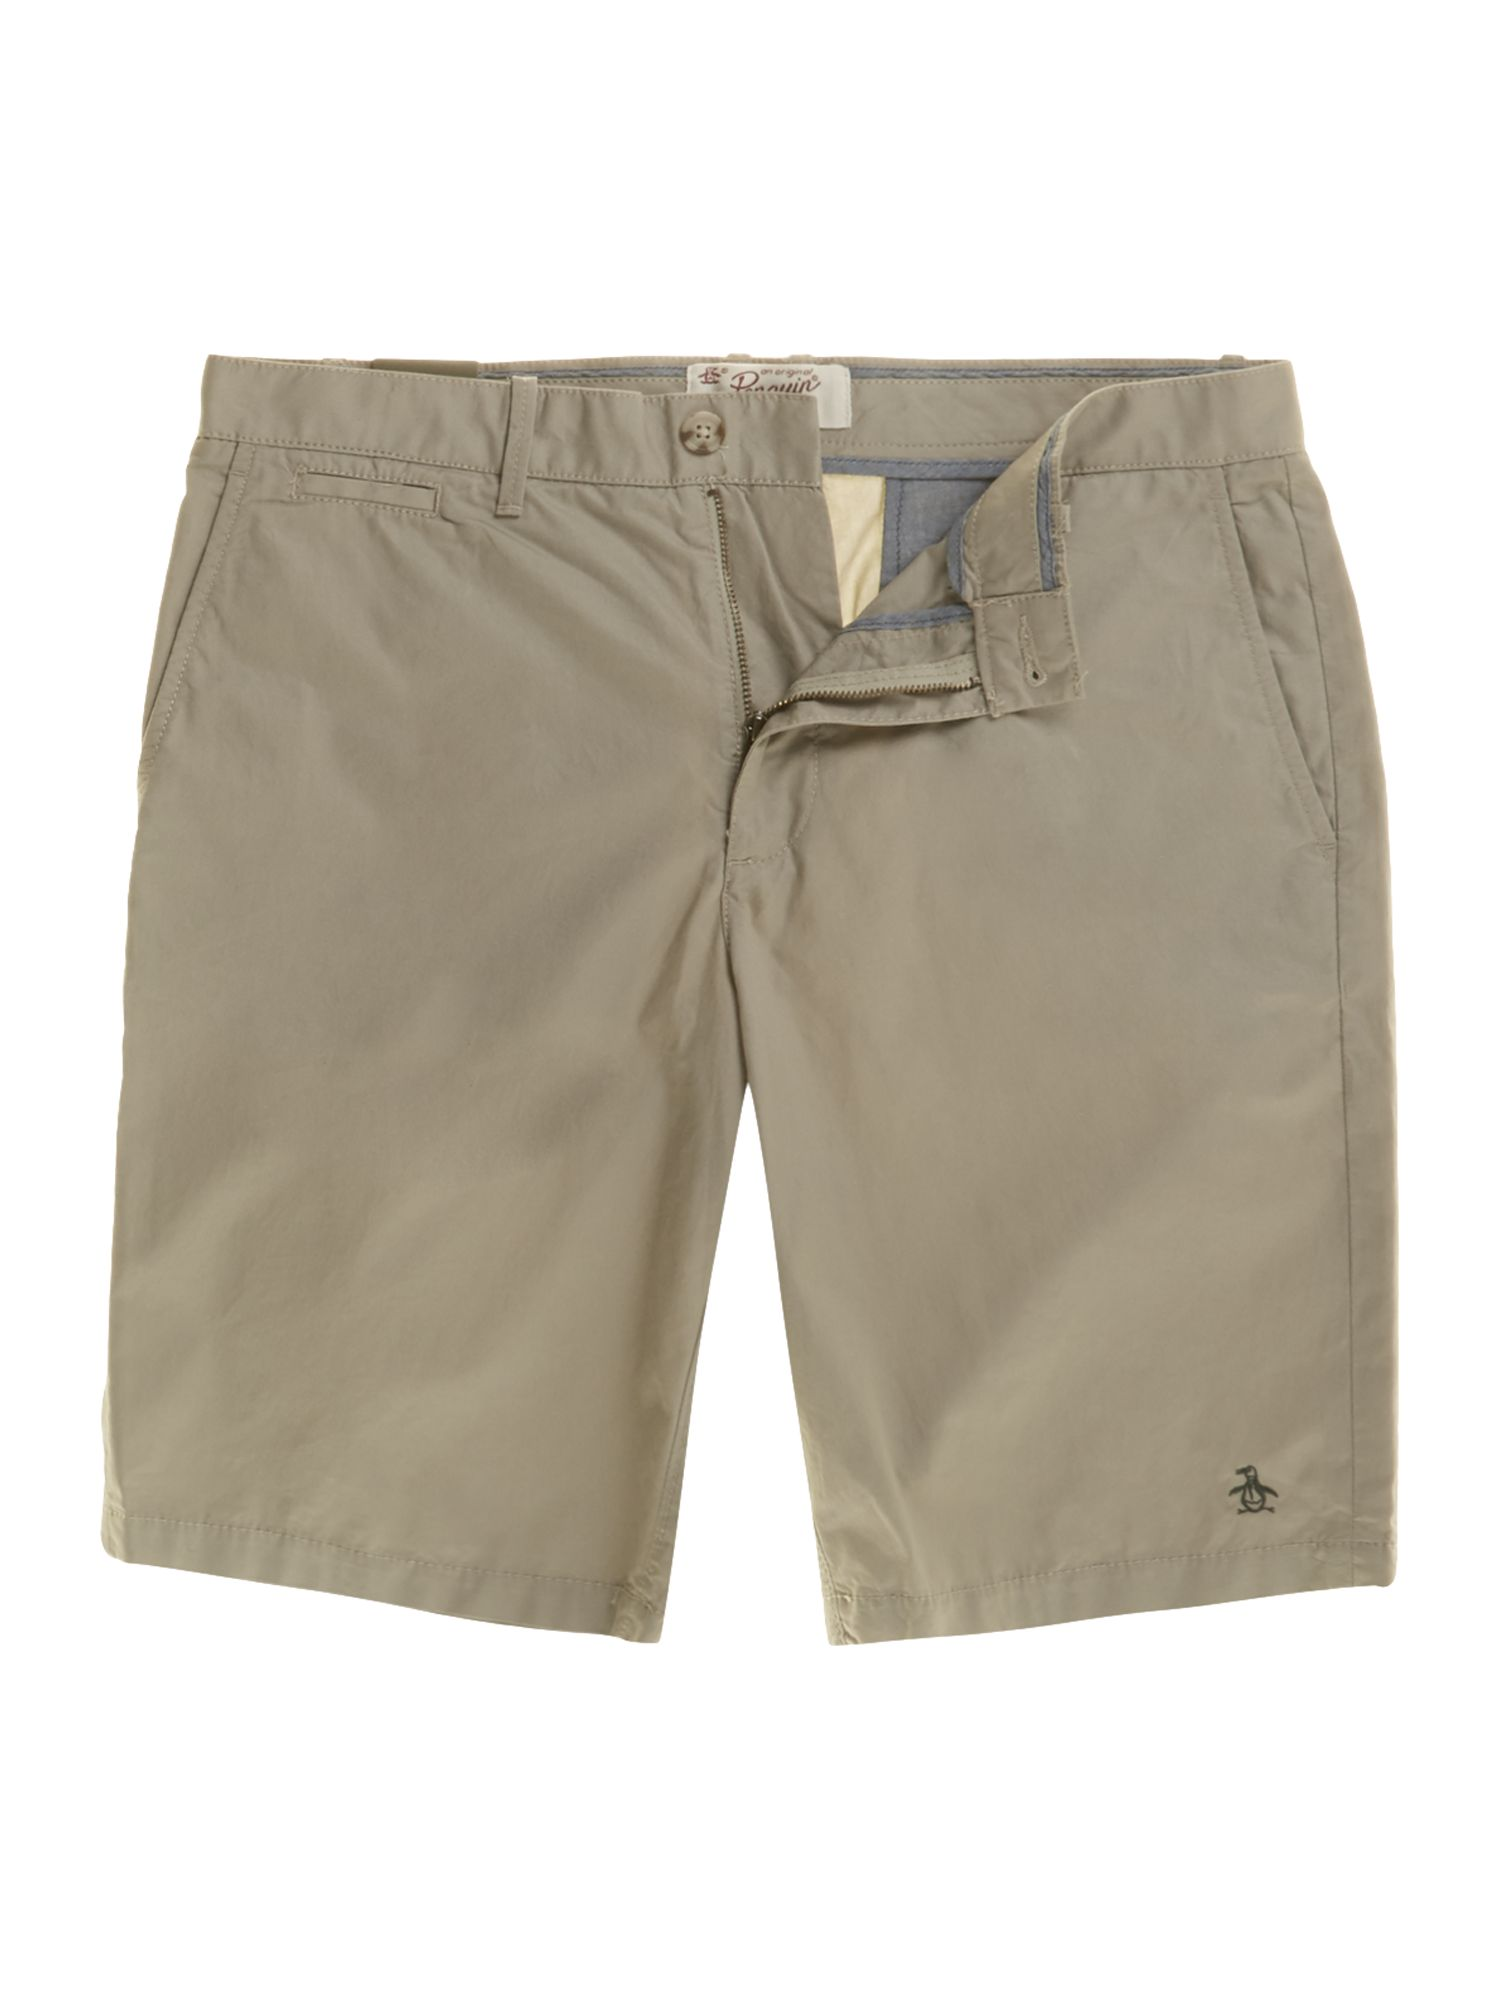 Regular fit chino shorts